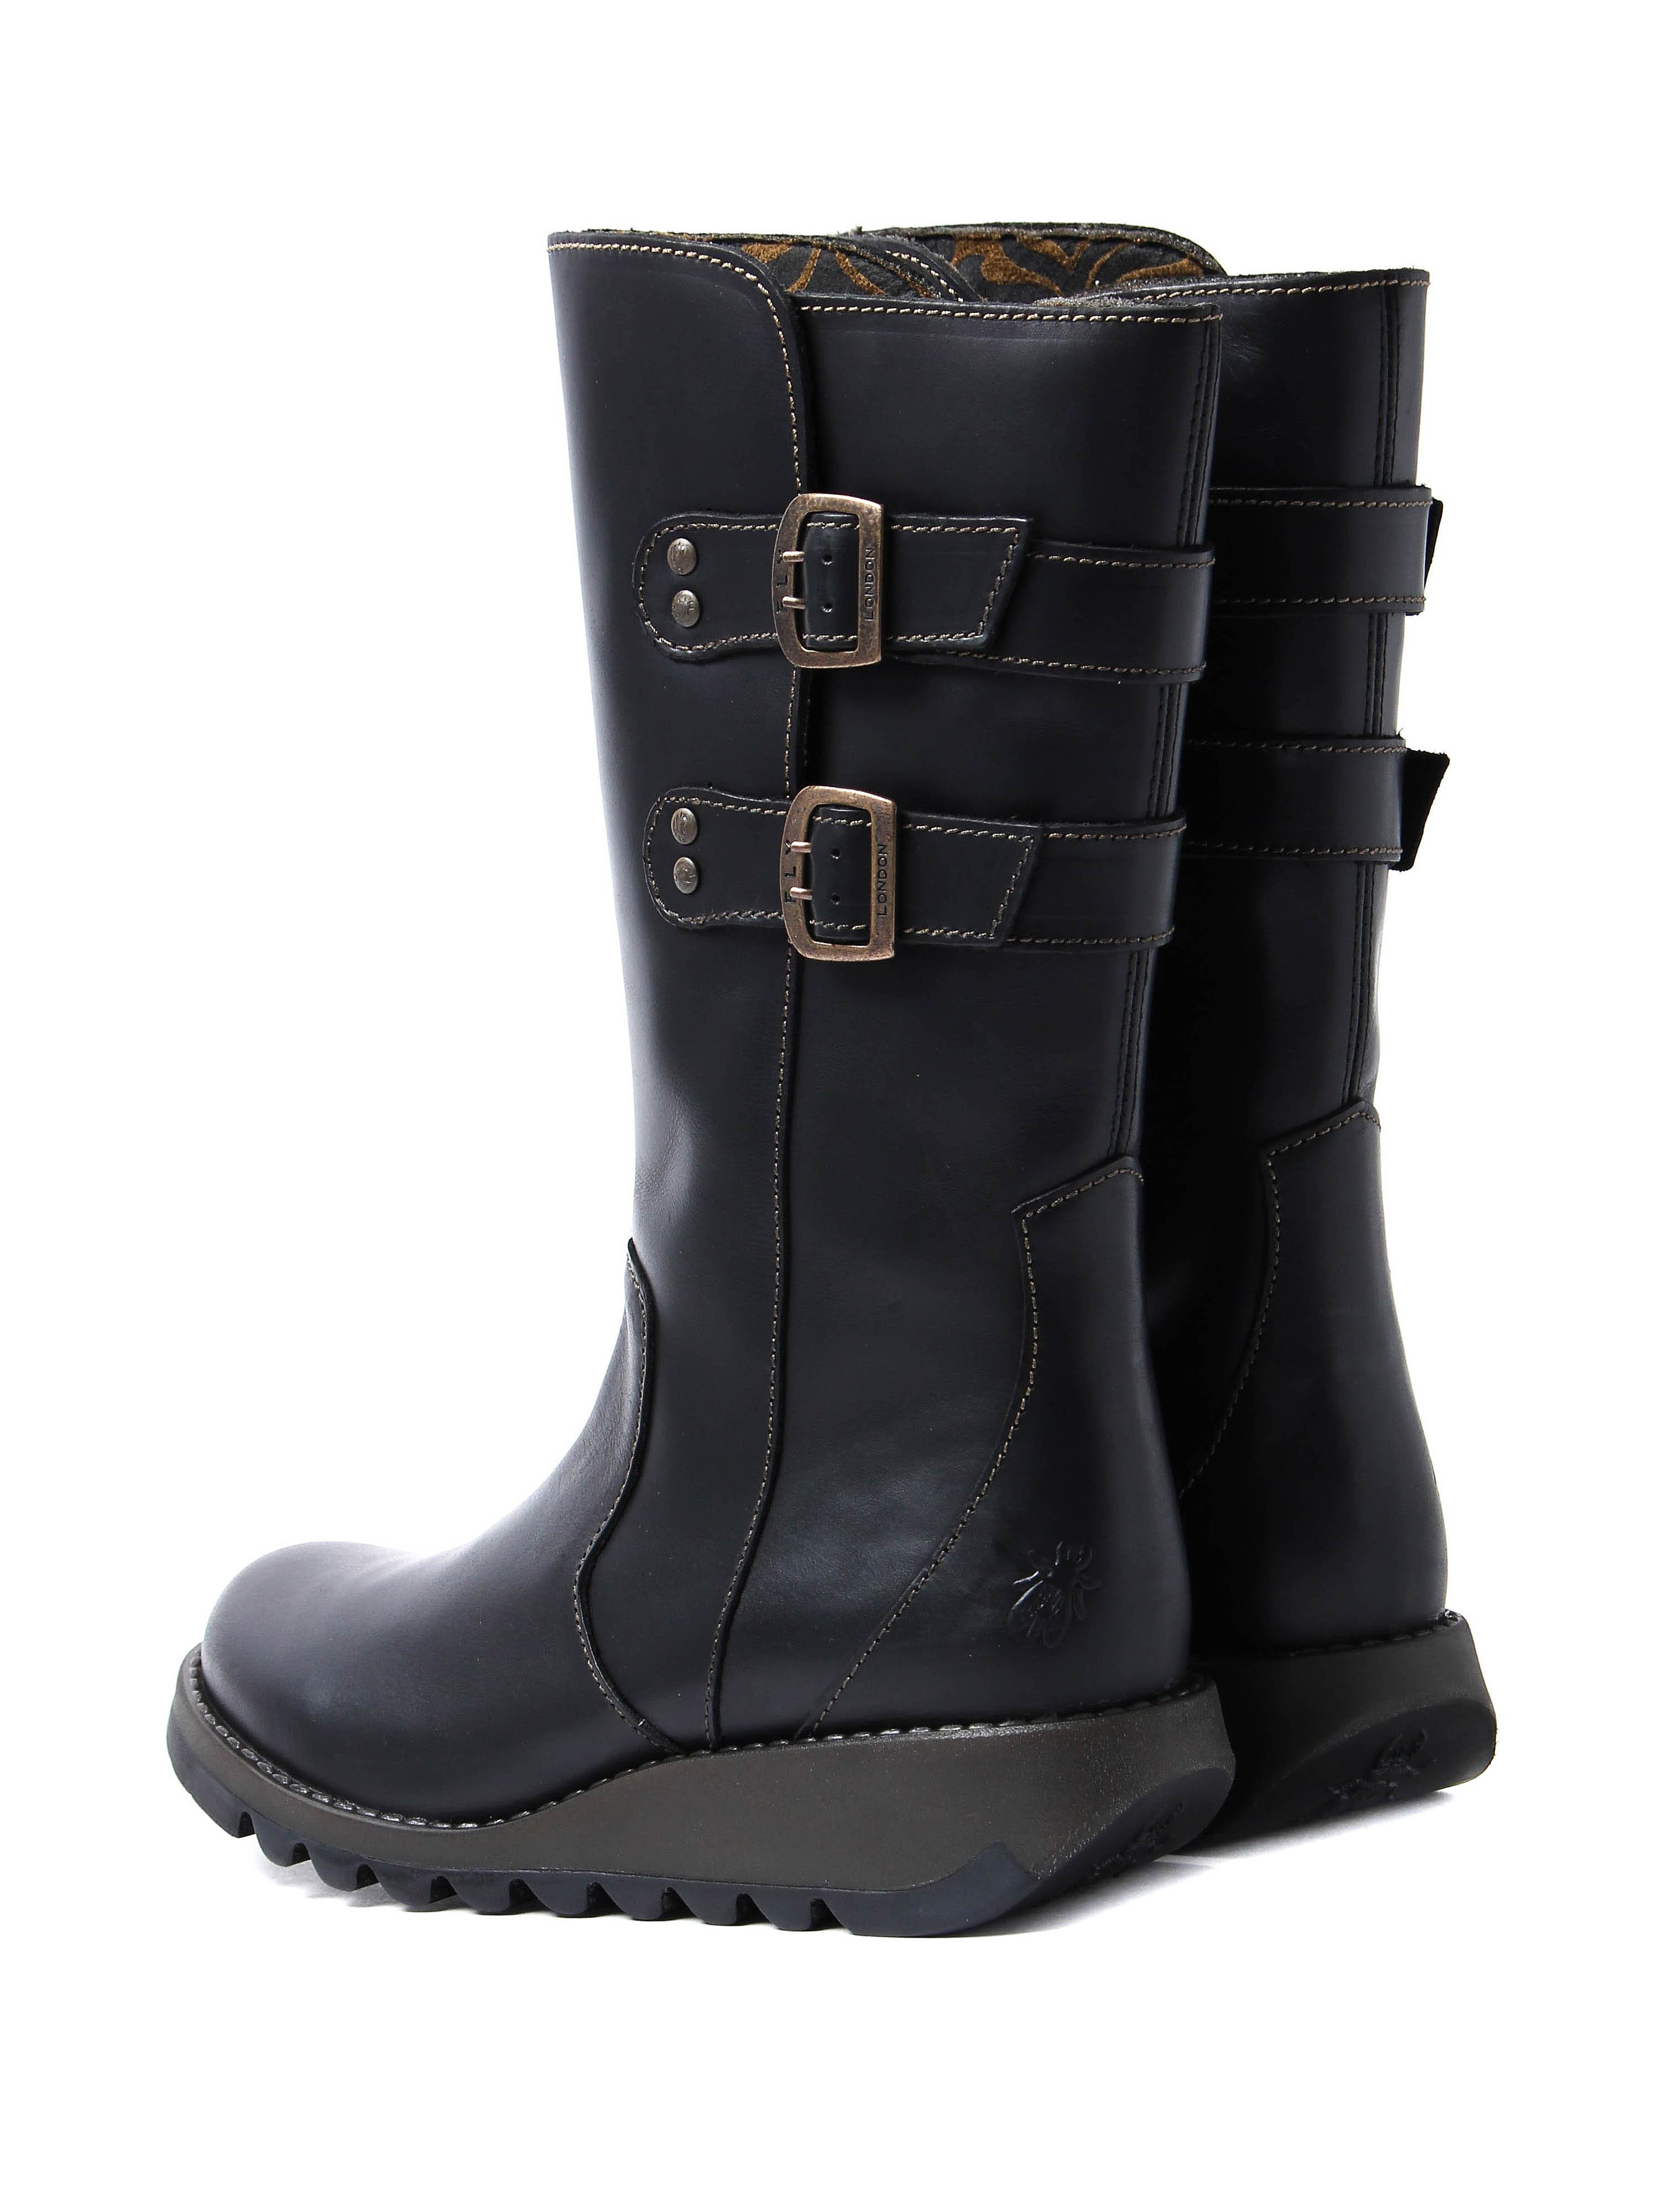 Fly London Women's Suli Mid Calf Boots - Black